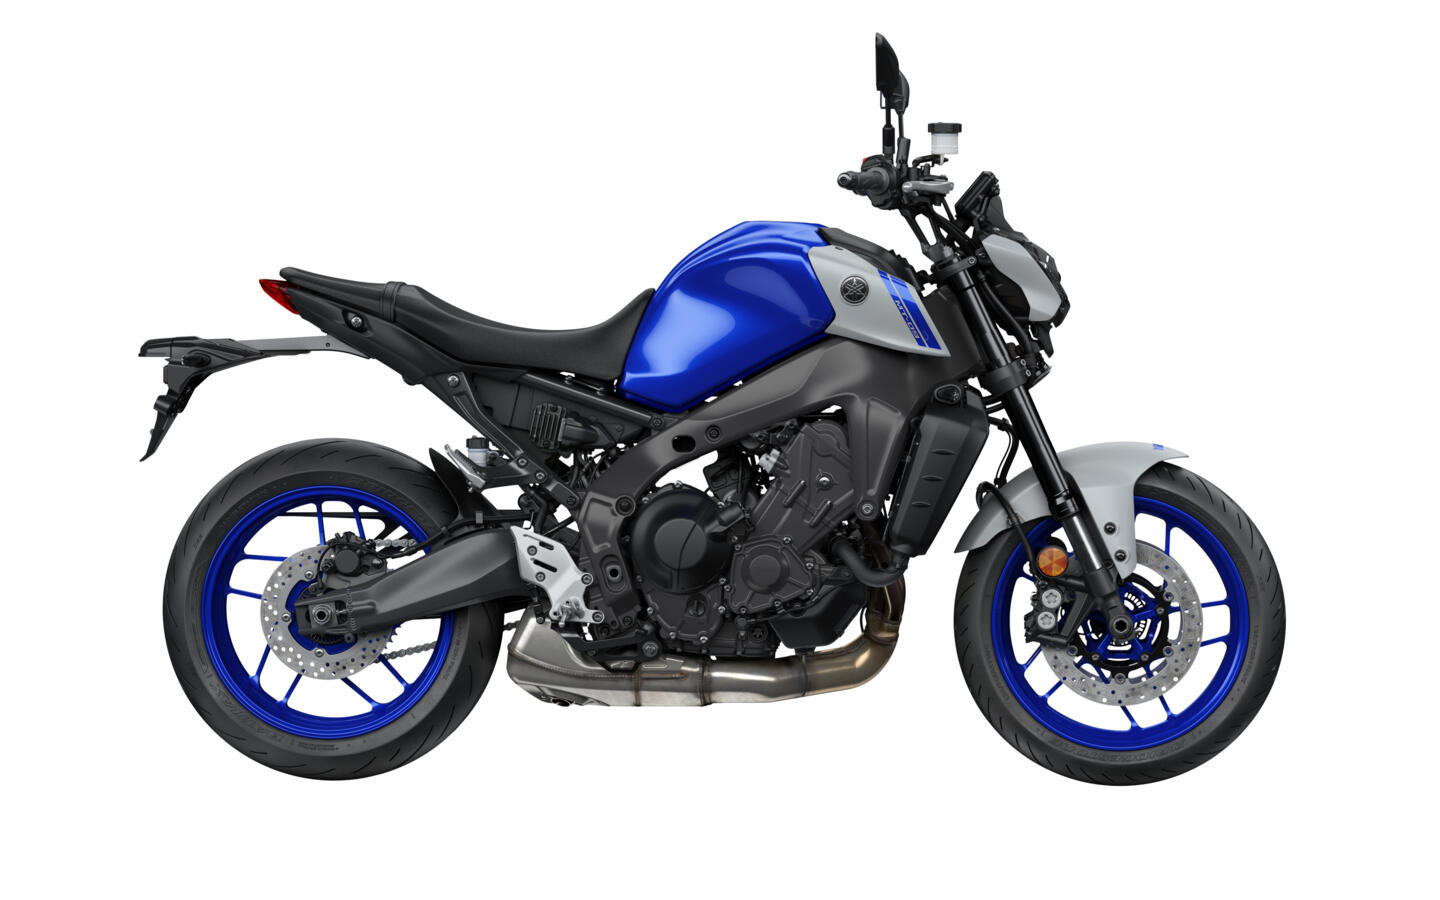 Yamaha MT-09 2021 in Icon Blue